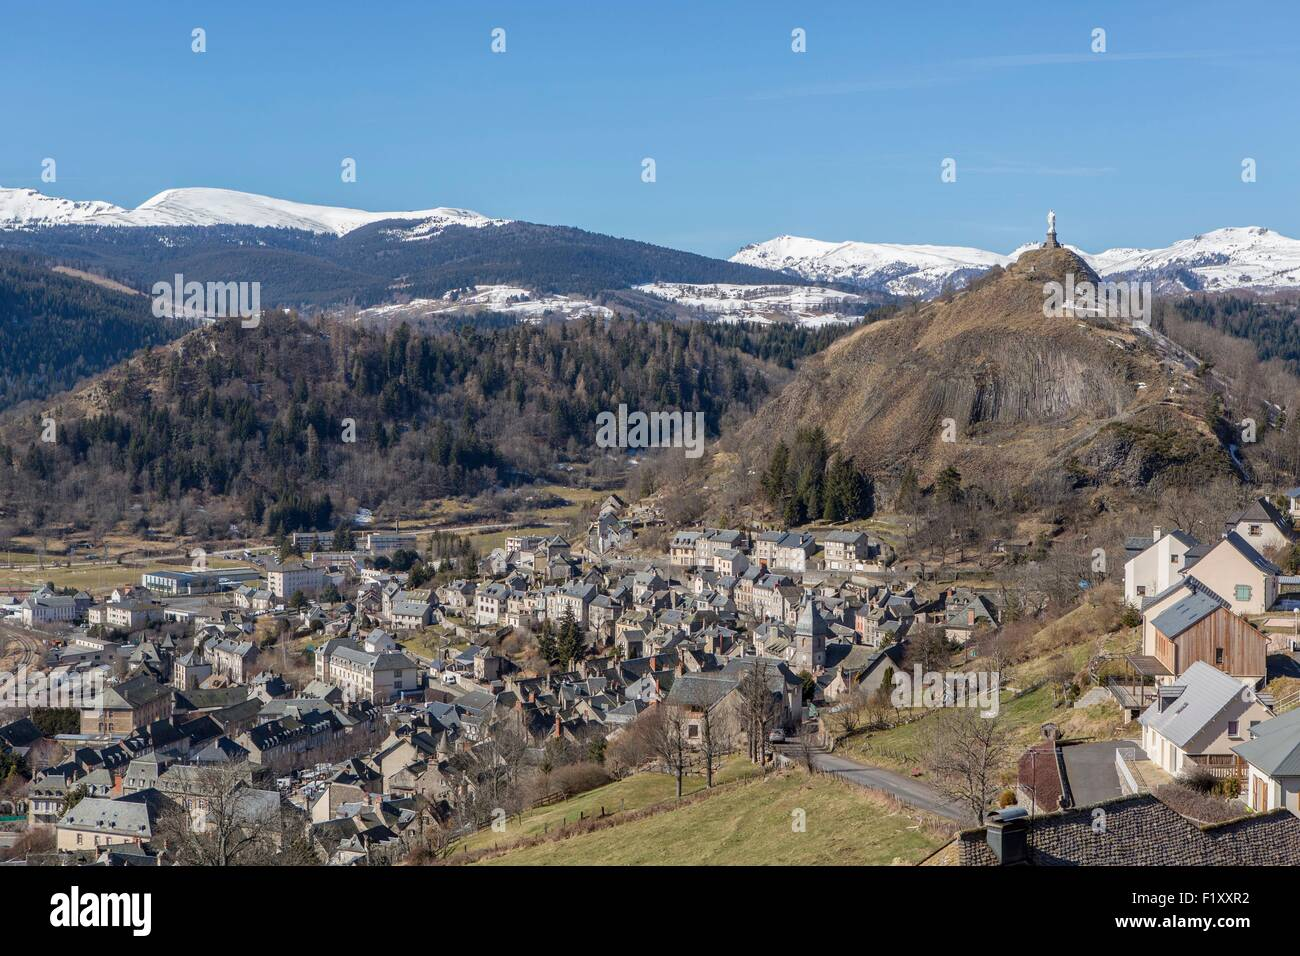 France, Cantal, Murat and the Rock of Bonnevie, Cantal volcanoes in the background, parc naturel regional des volcans - Stock Image